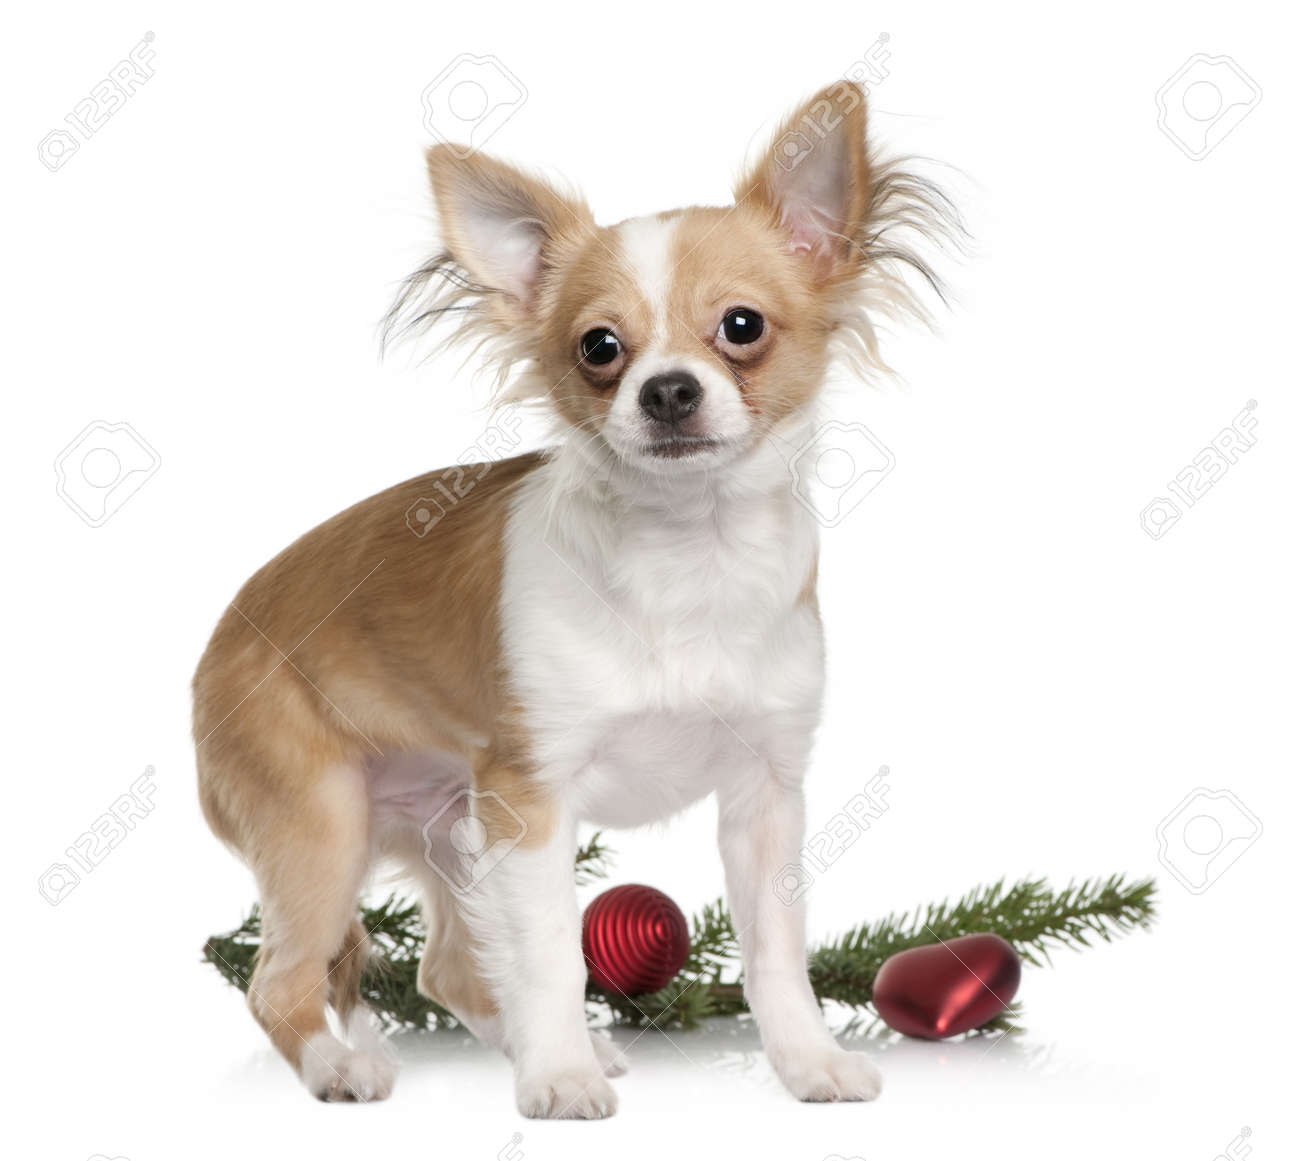 Chihuahua, 7 months old, standing with Christmas decorations in front of white background Stock Photo - 7120384